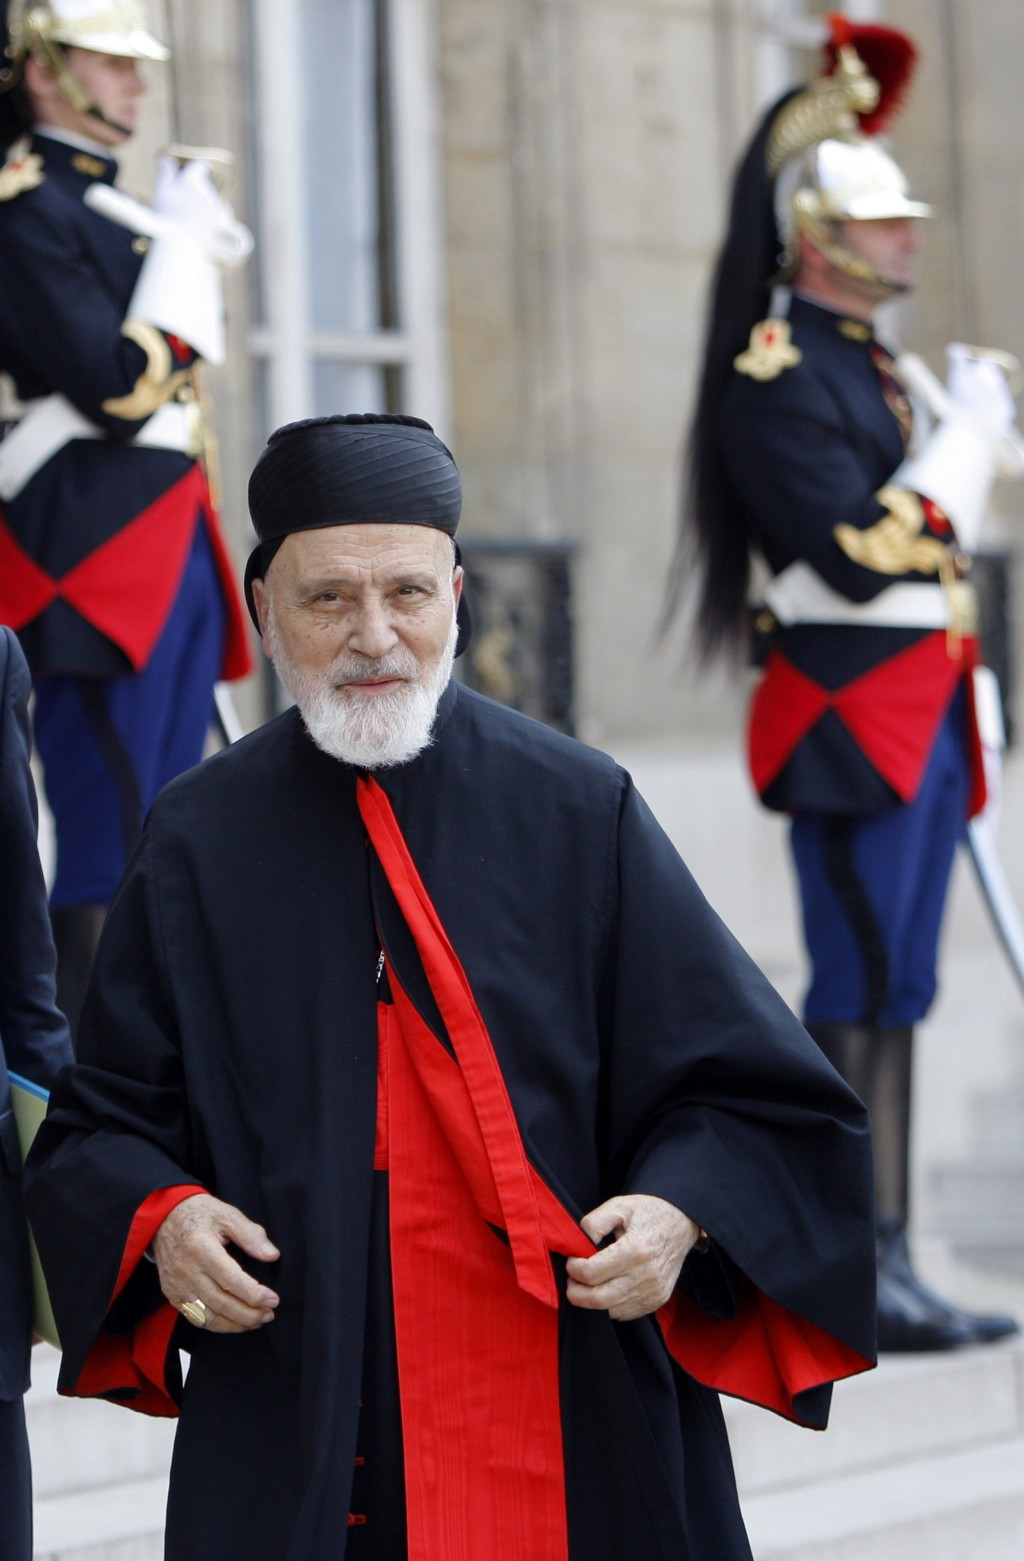 FILE - In this June 16, 2010 file photo, Cardinal Nasrallah Butros Sfeir, head of Lebanon's Maronite Church, arrives for a meeting with French Preside...